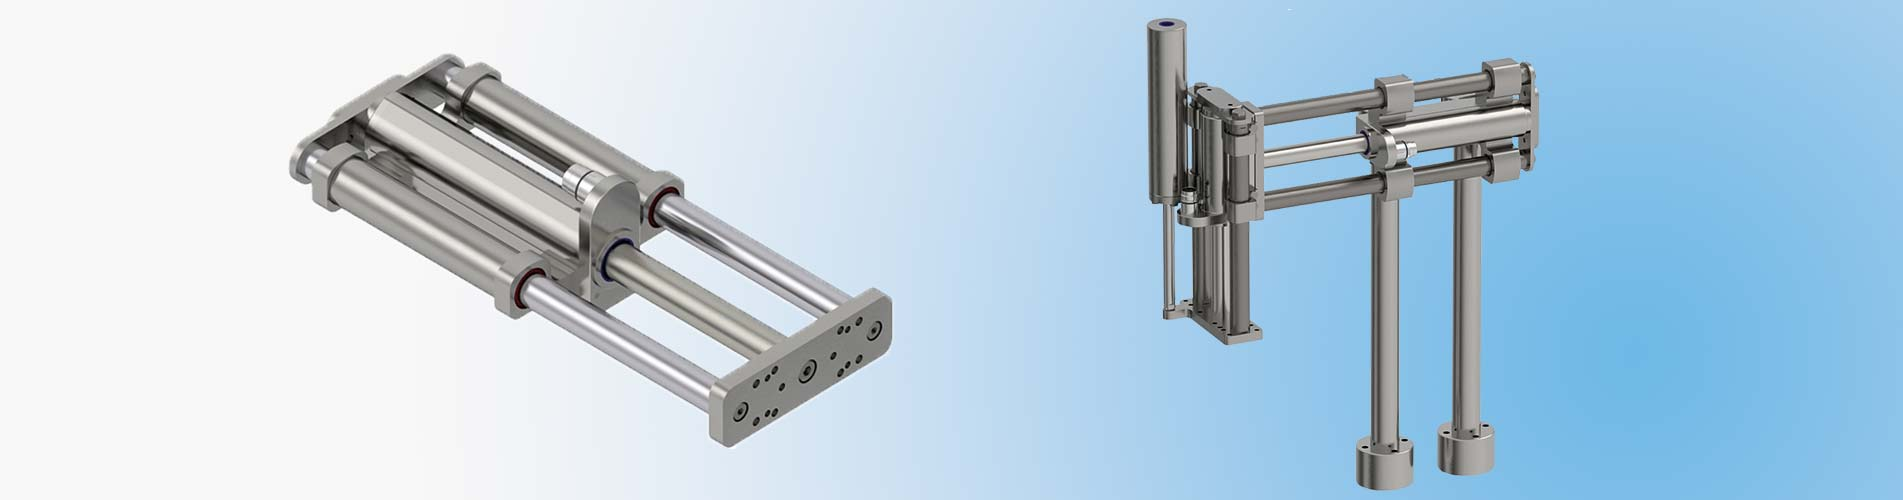 LinMot's New Stainless Steel Linear Modules